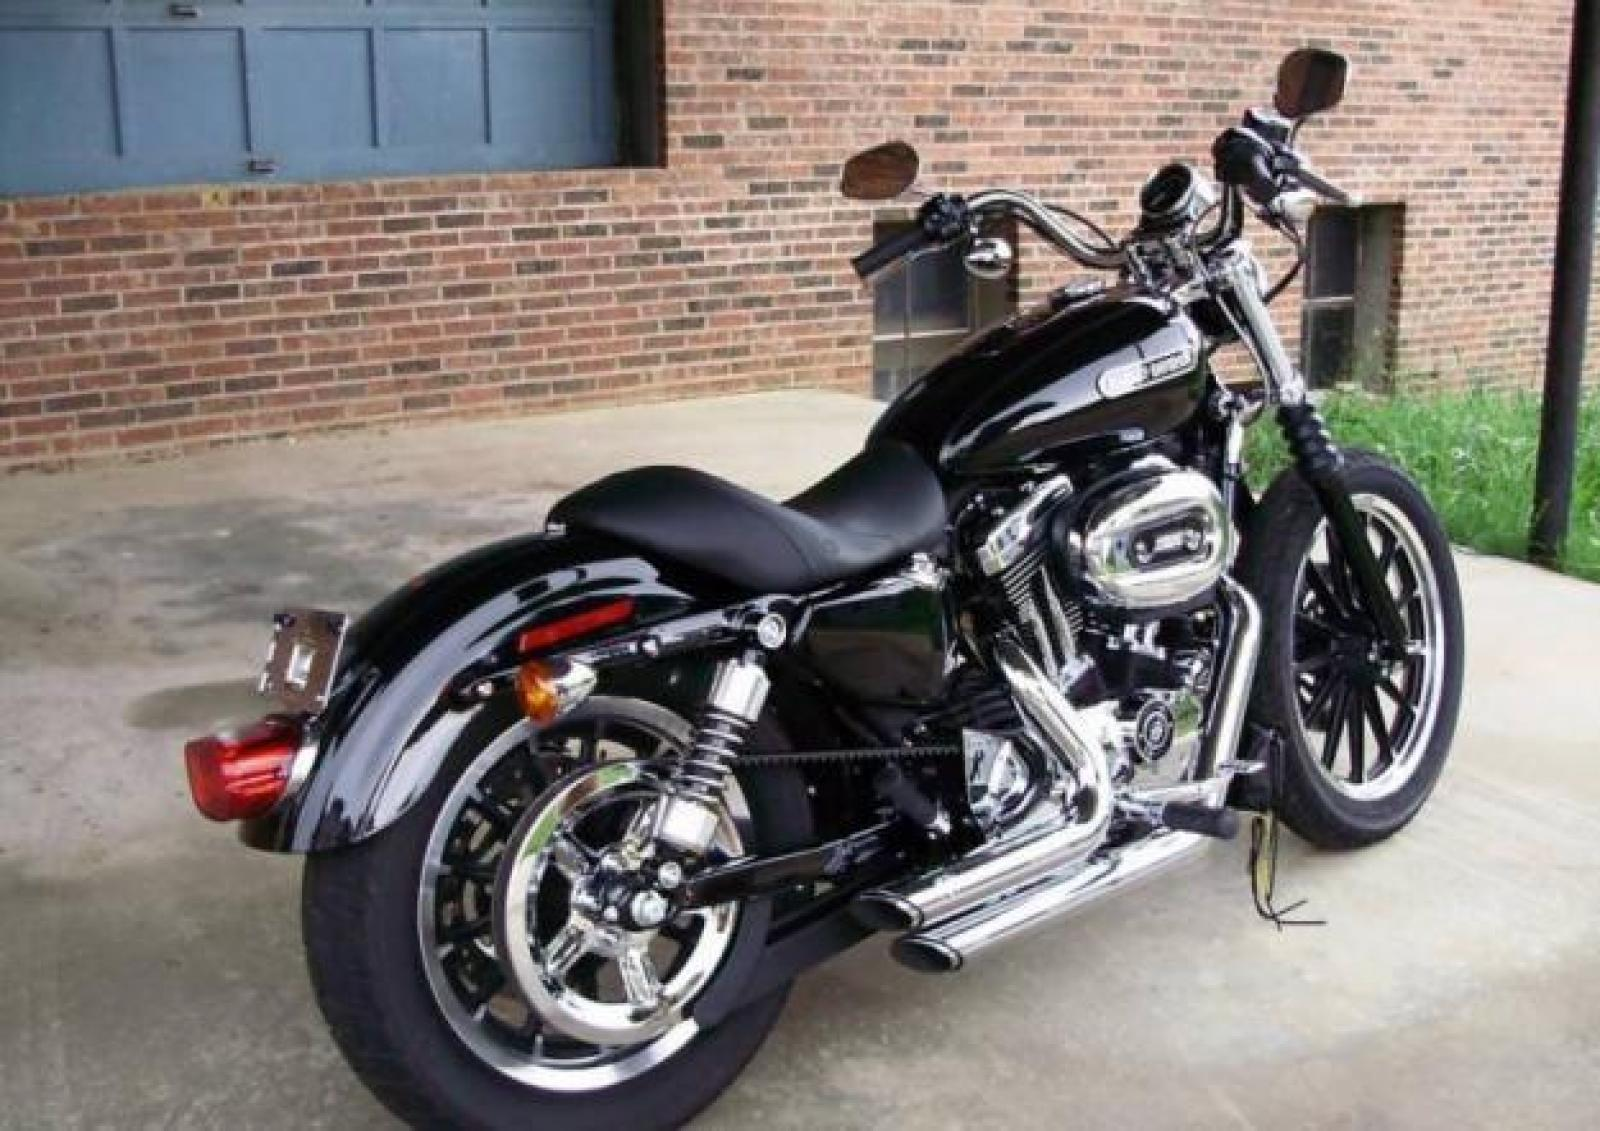 2006 harley davidson xl1200l sportster 1200 low moto zombdrive com. Black Bedroom Furniture Sets. Home Design Ideas